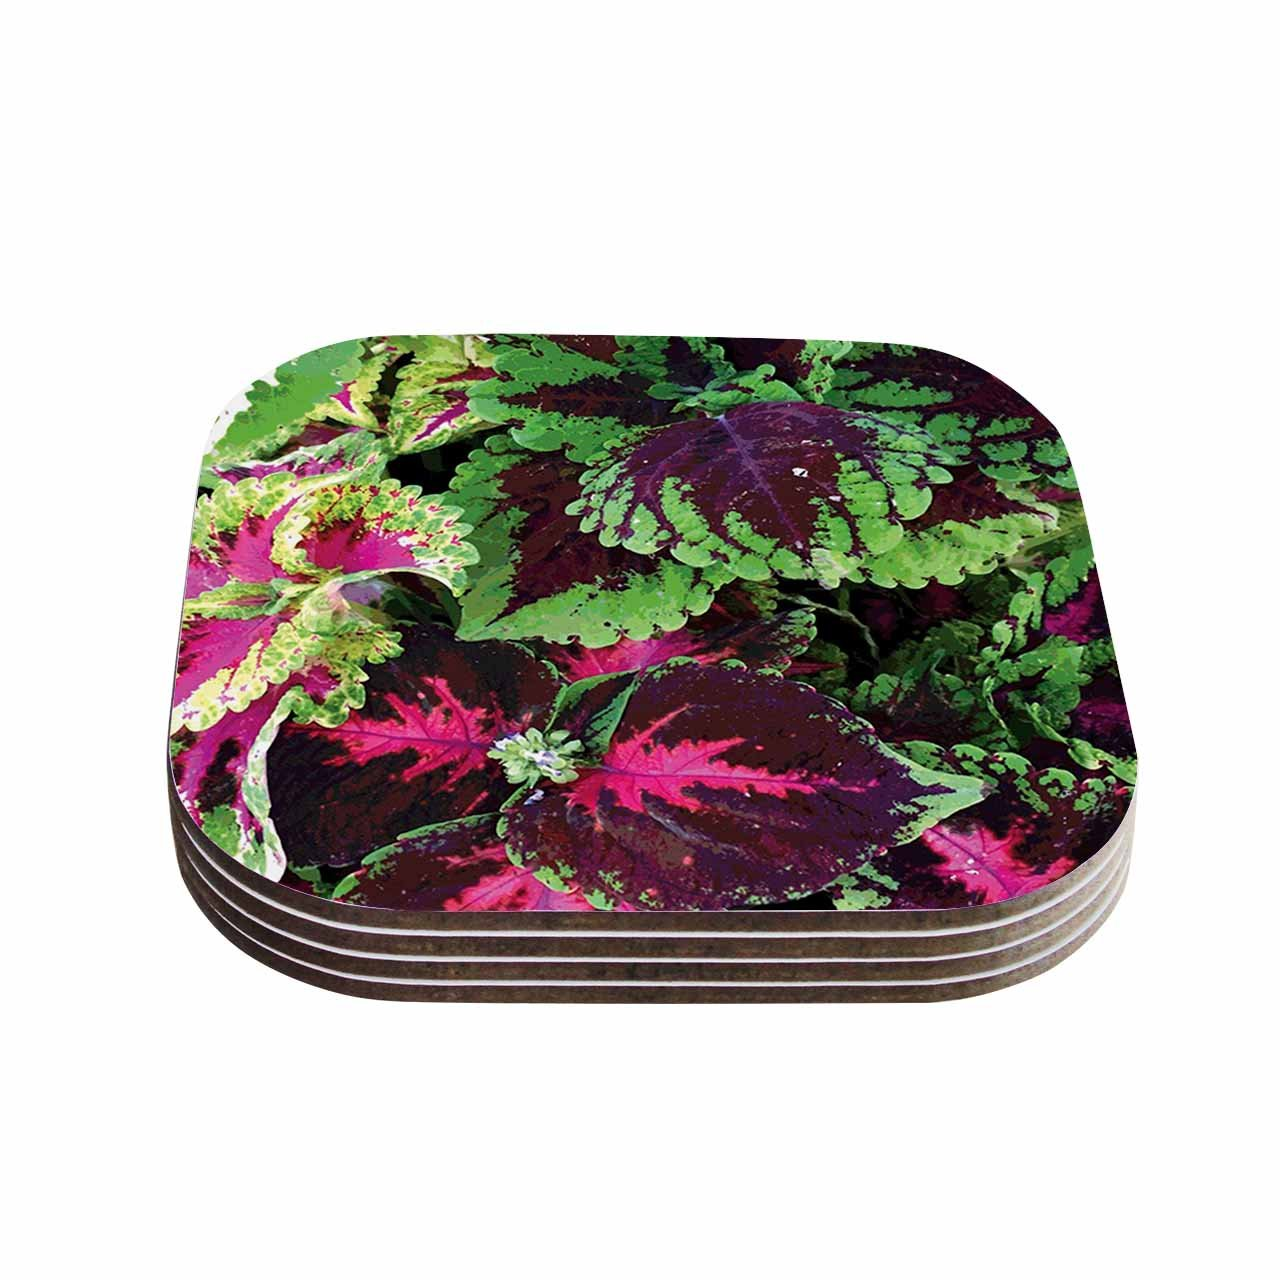 KESS InHouse Louise Machado'Forest' Green Magenta Coasters (Set of 4), 4 x 4', Multicolor